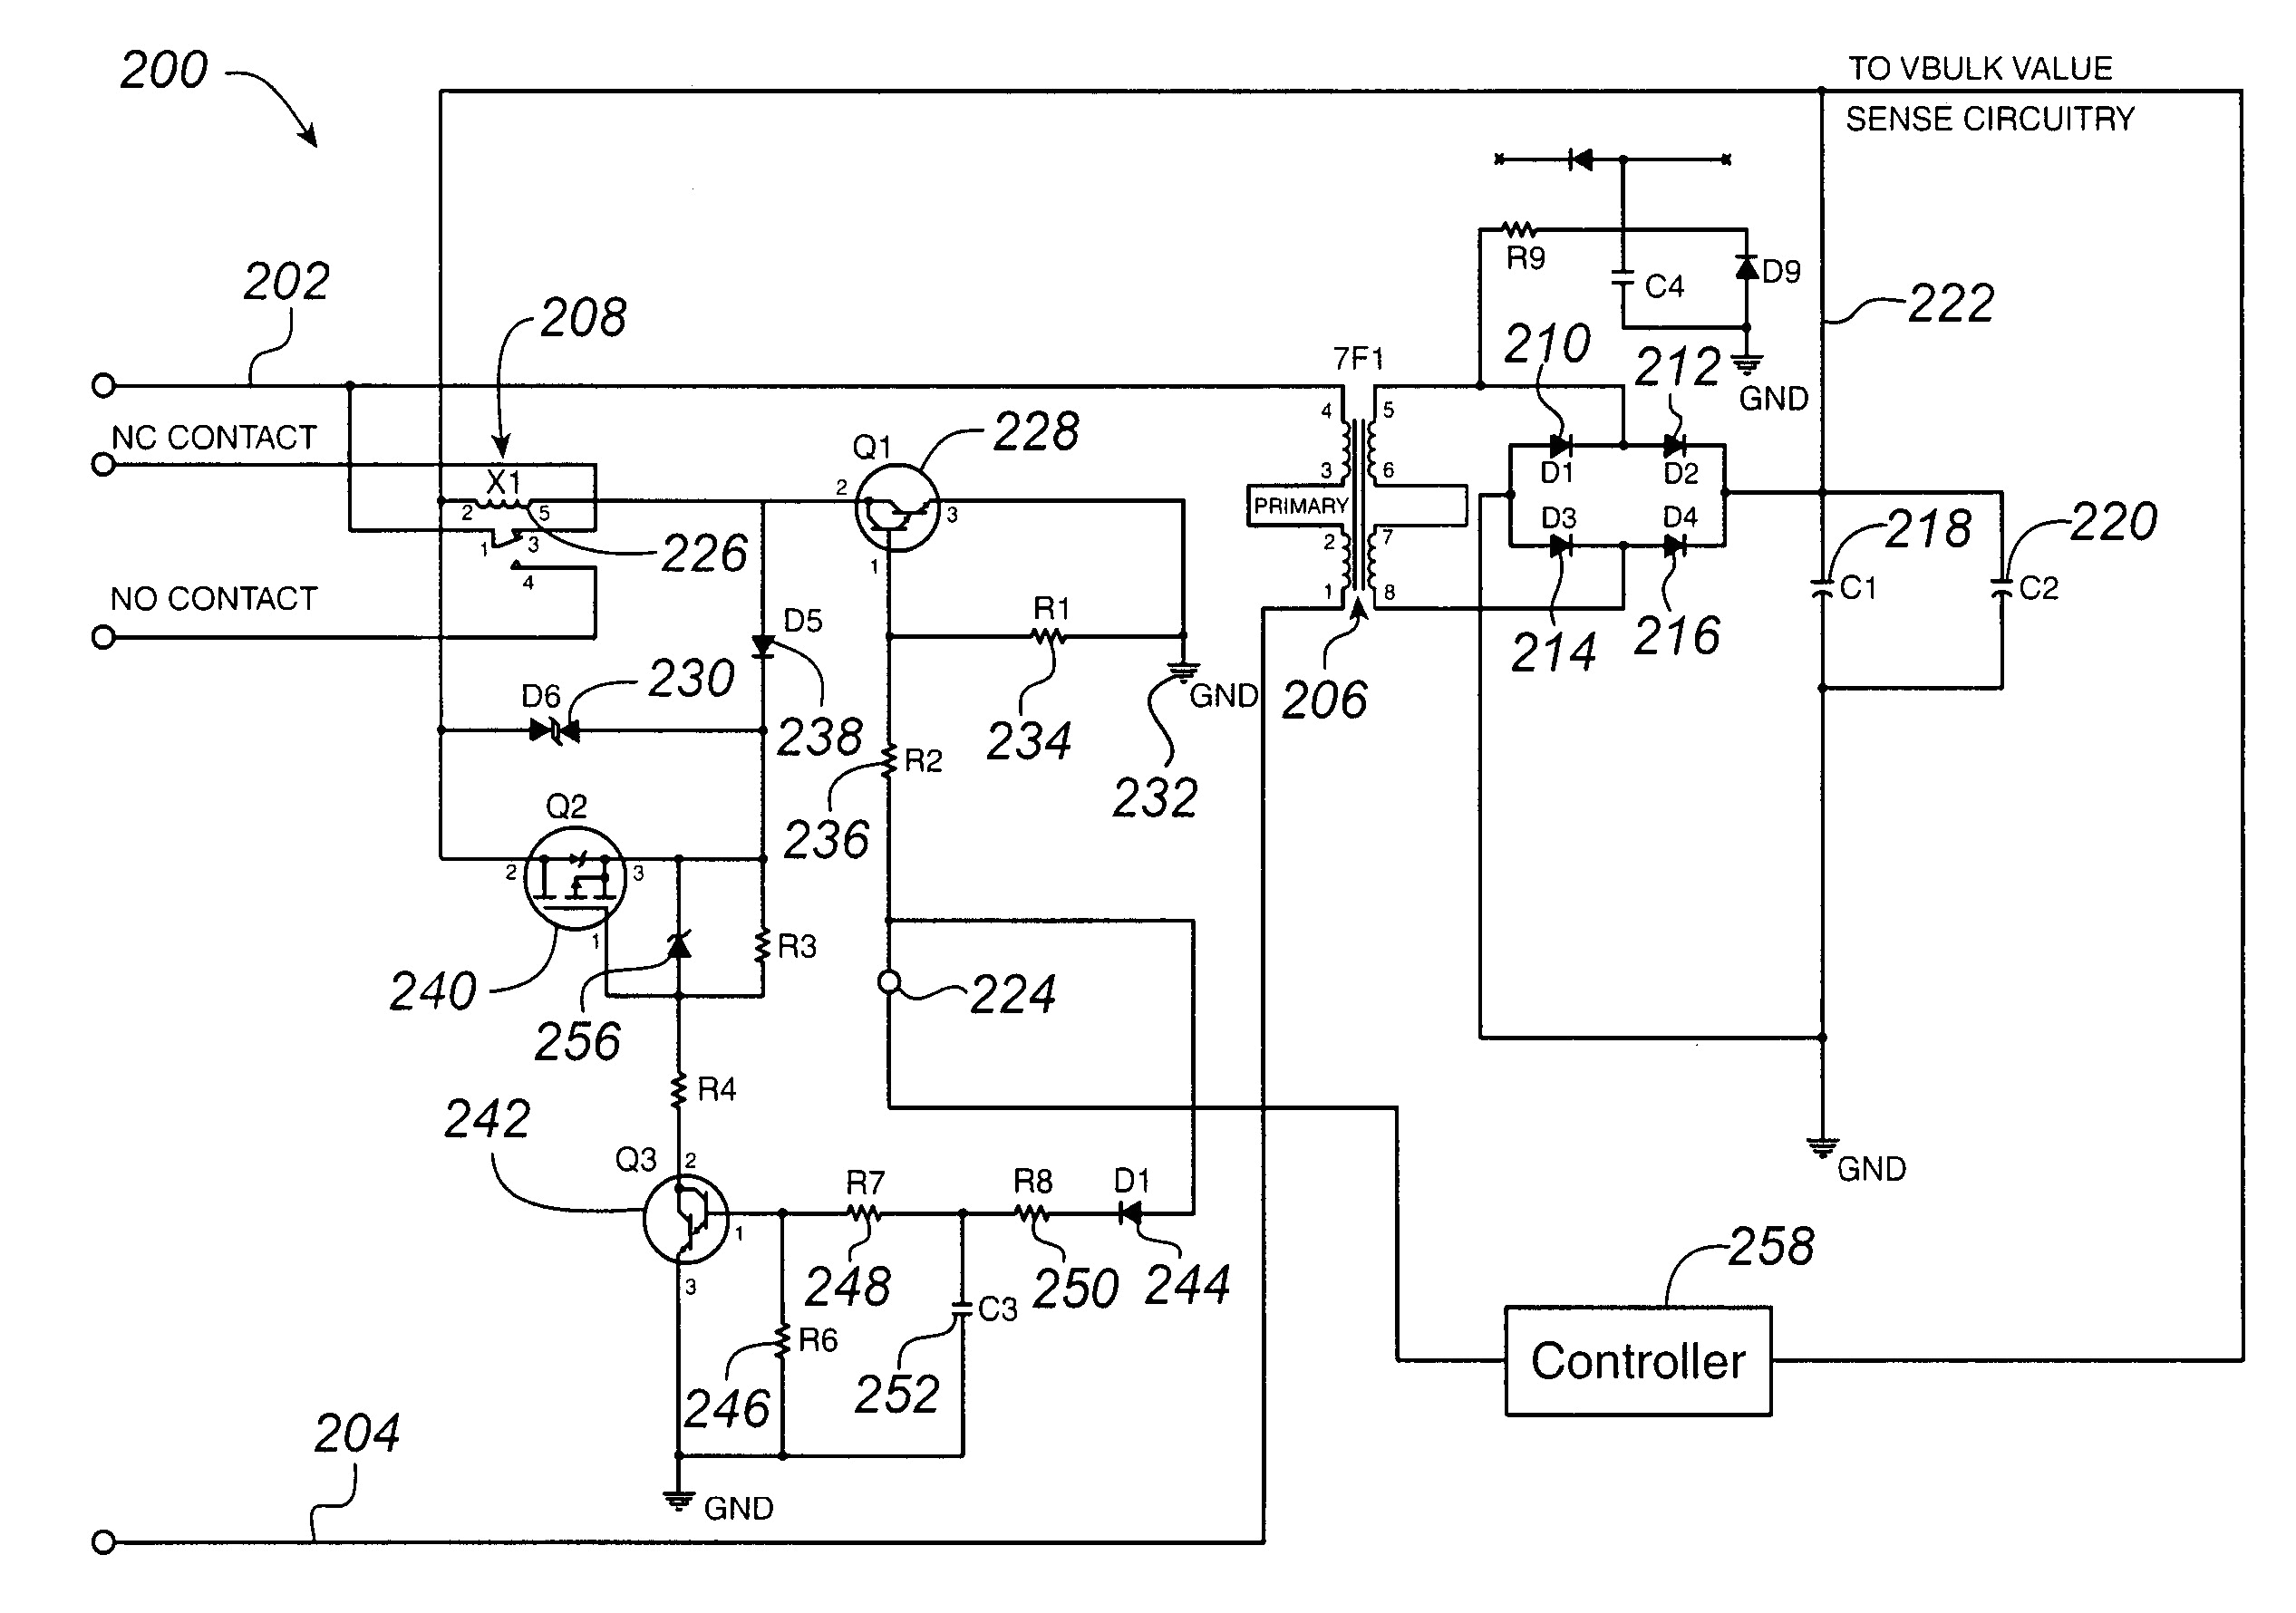 heatcraft walk in cooler wiring diagram heatcraft walk in cooler wiring diagram best unusual bohn unit coolers wiring diagrams electrical 3d png